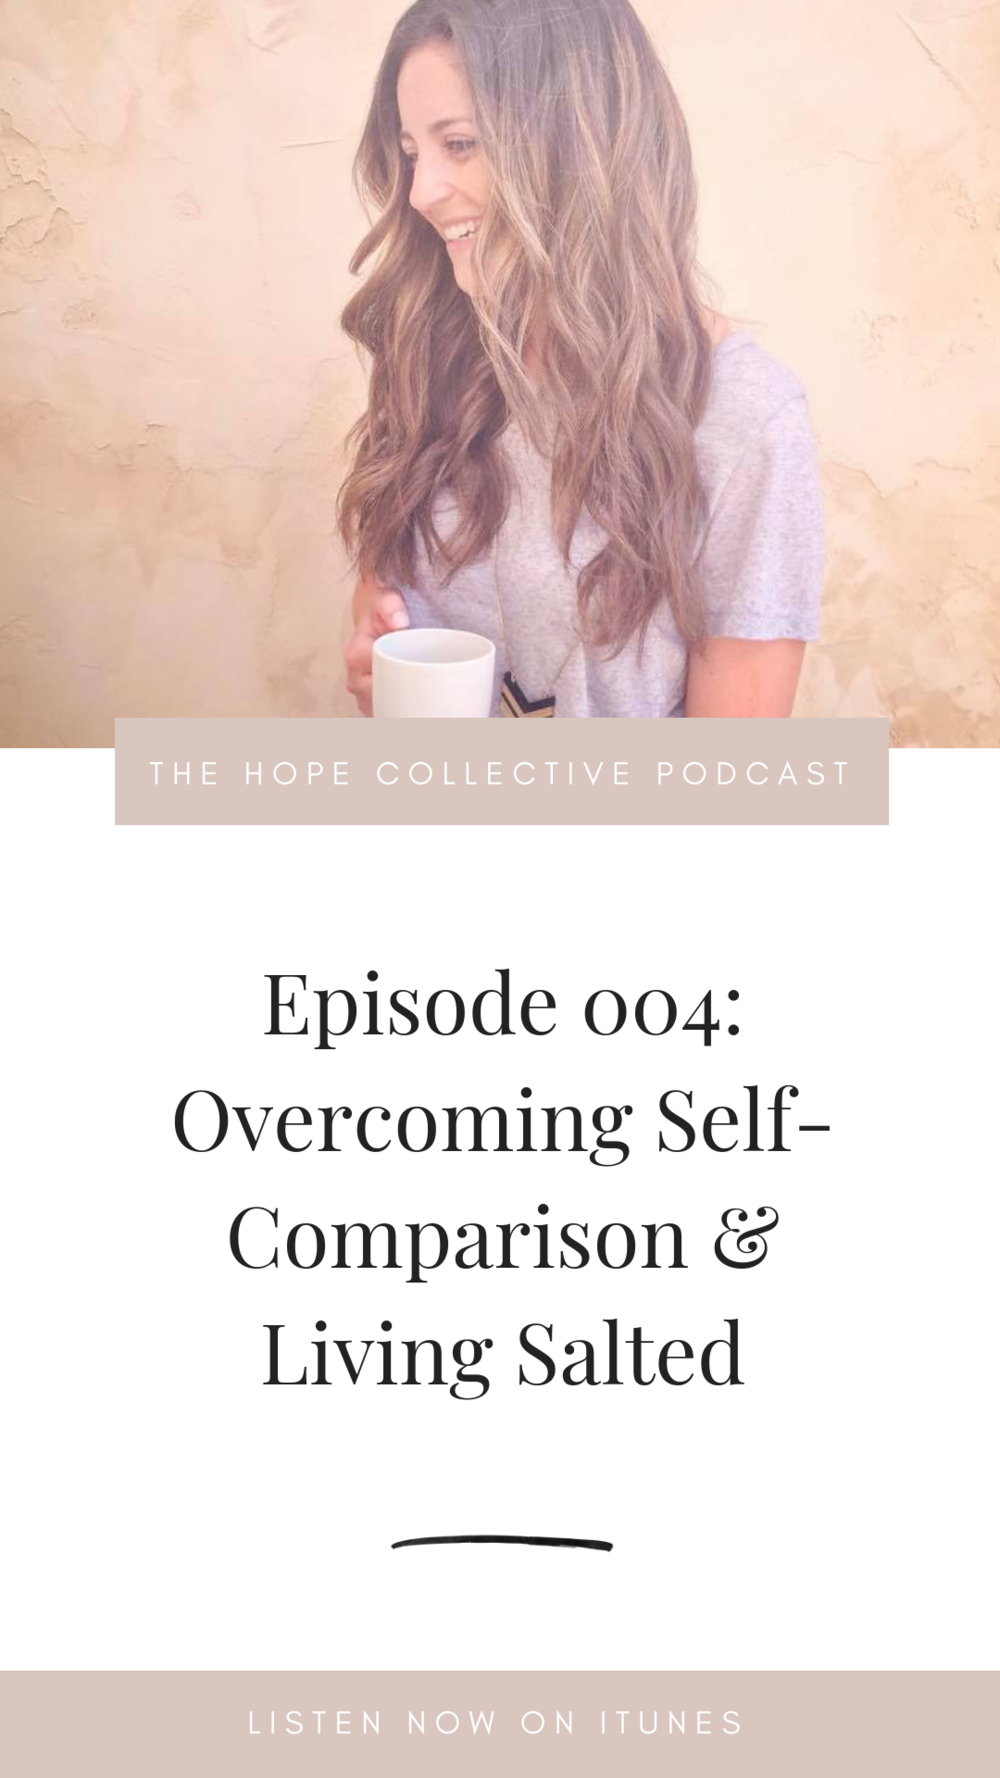 THE HOPE COLLECTIVE PODCAST - OVERCOMING SELF-COMPARISON AND LIVING SALTED